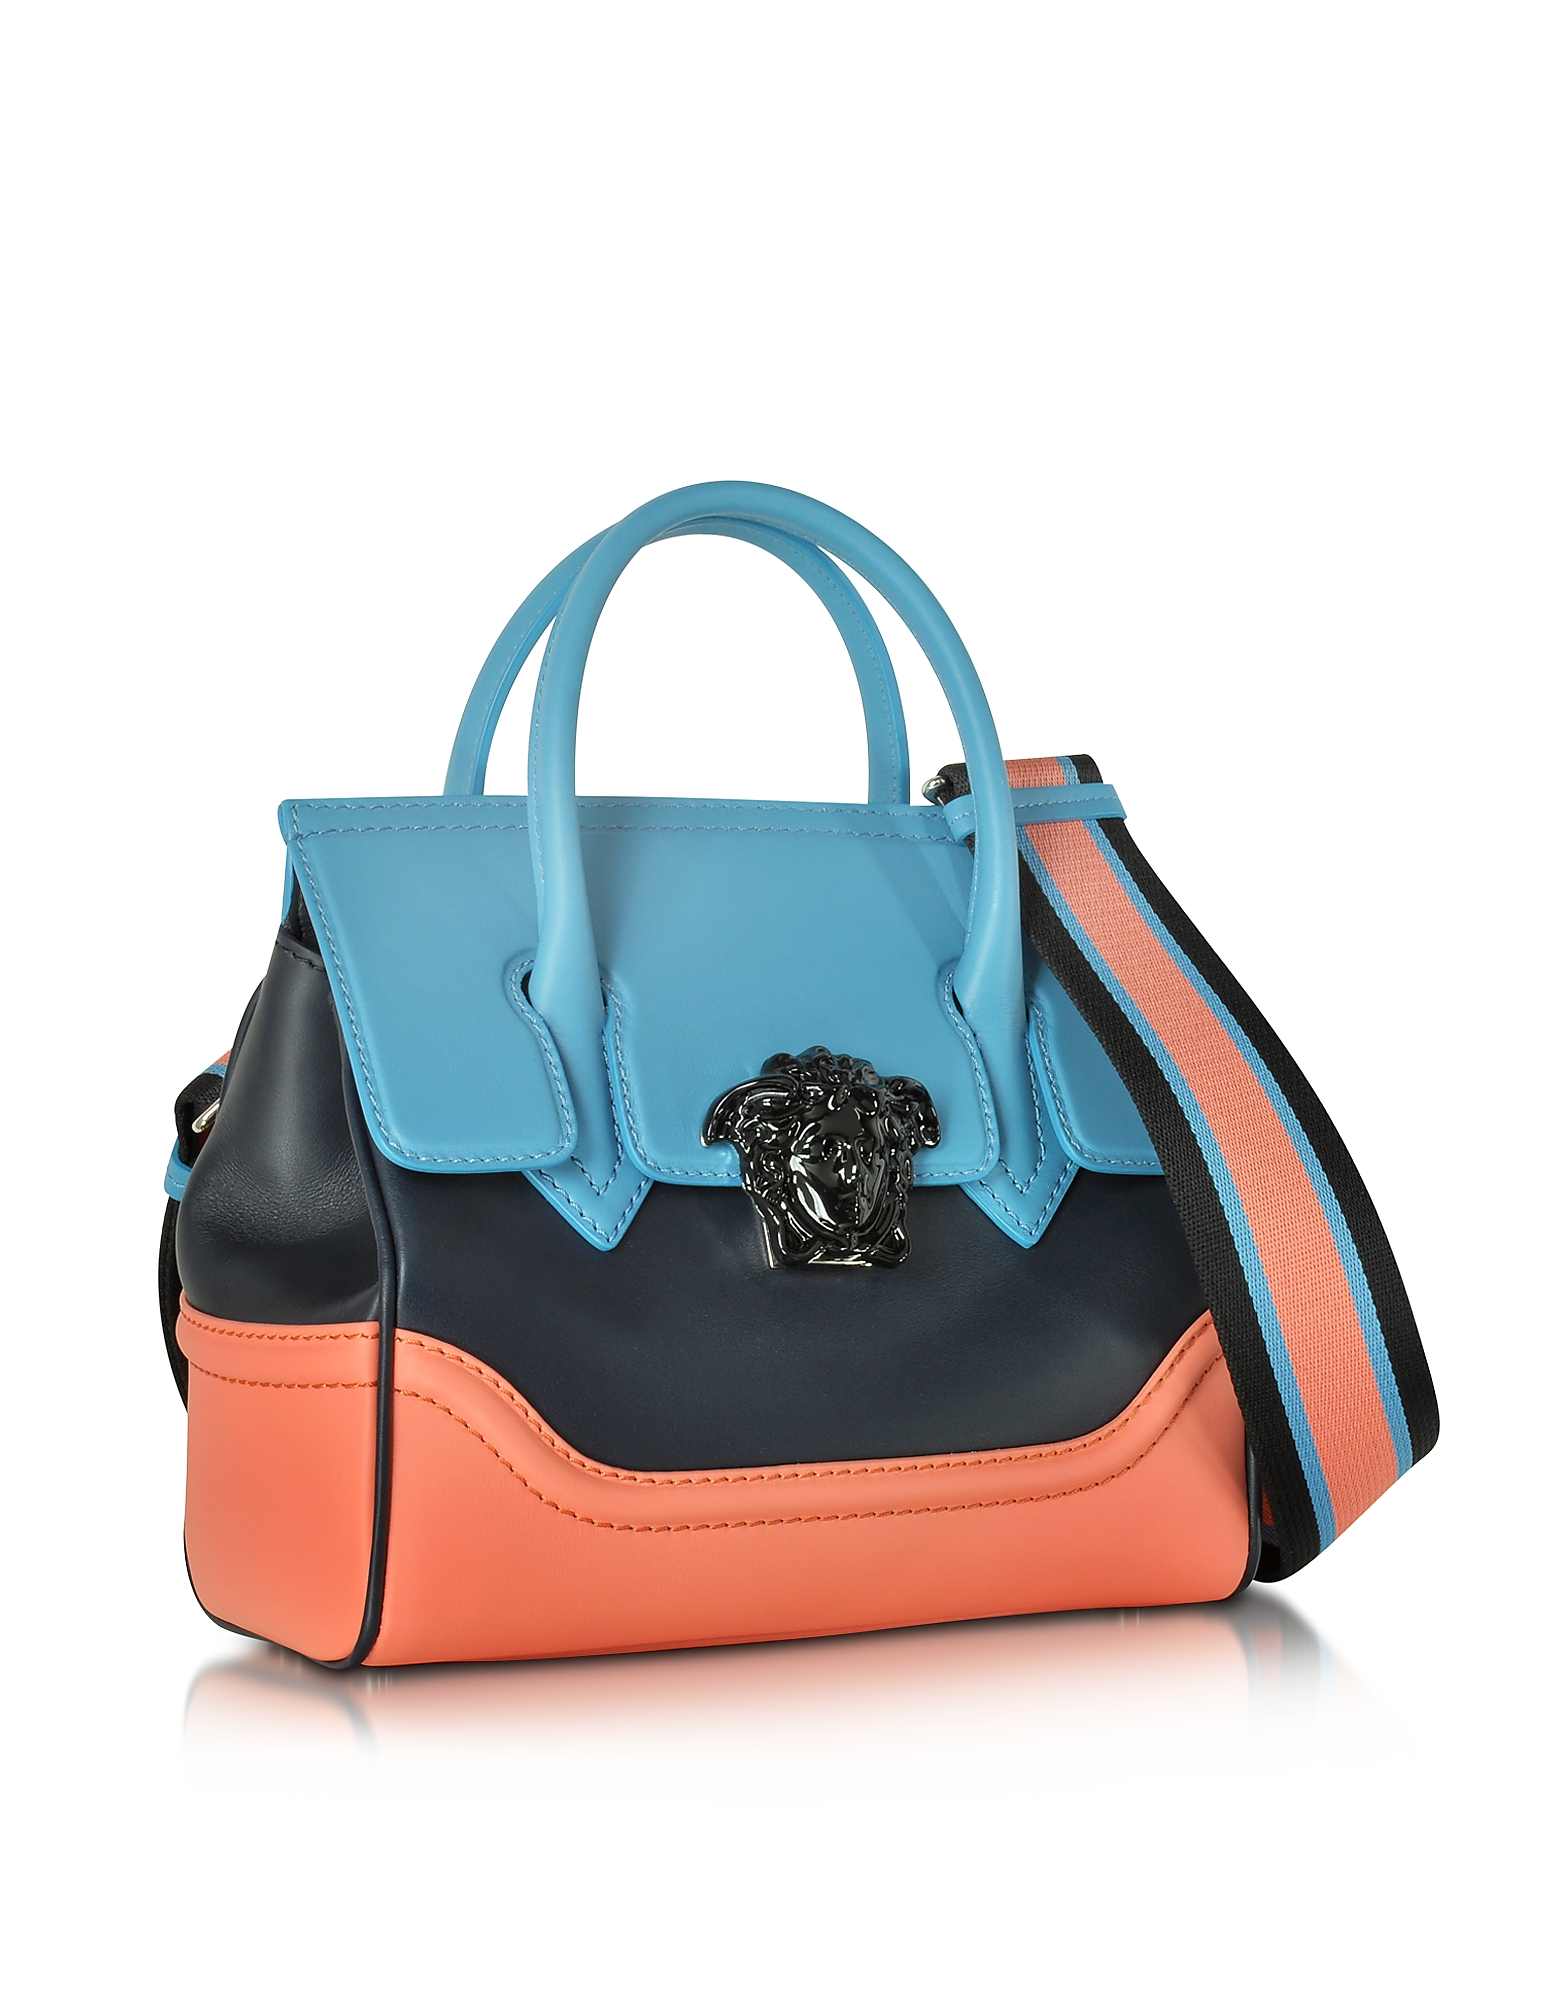 9d6590e0d620 Lyst - Versace Small Palazzo Empire Color Block Leather Tote Bag in Pink